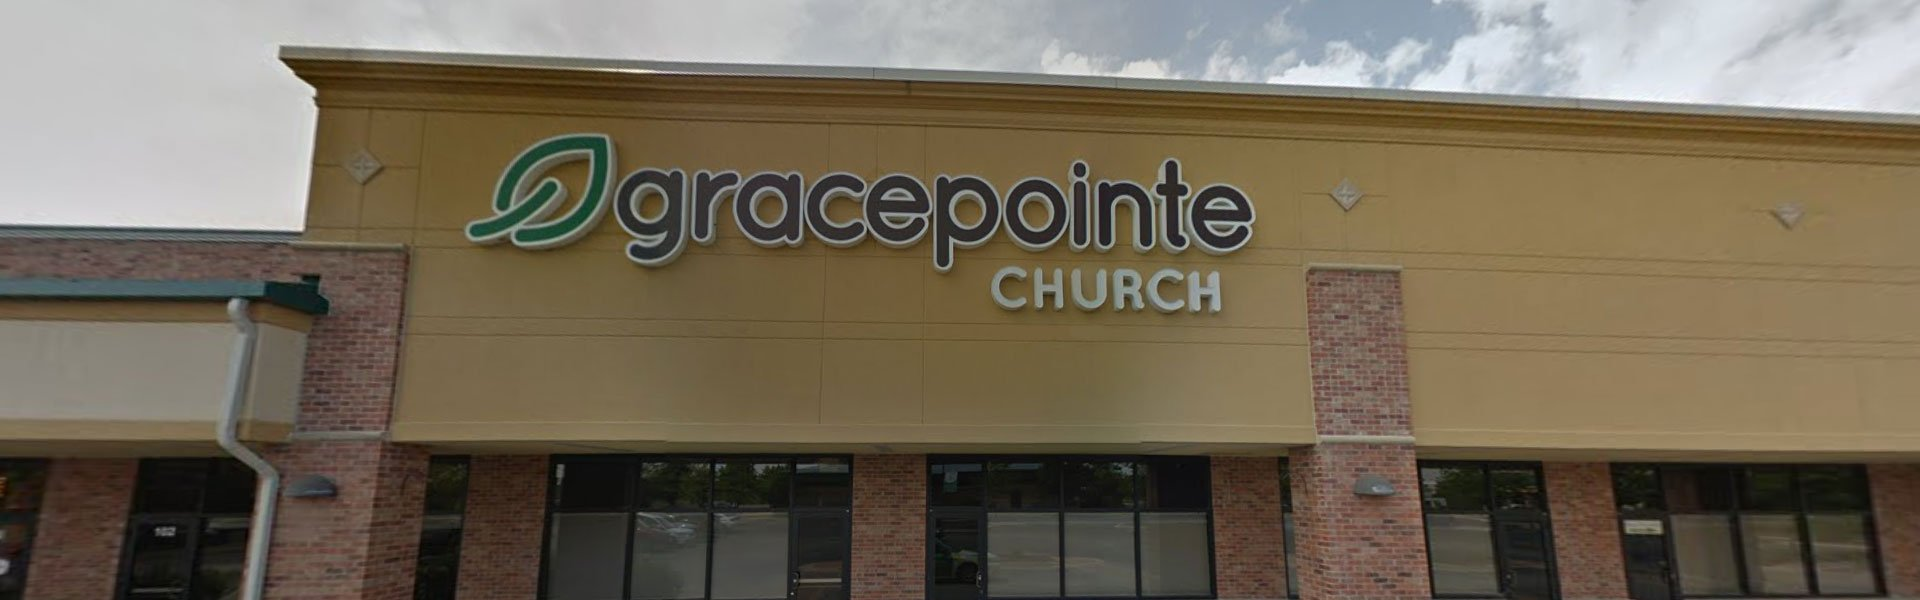 About Grace Pointe Church